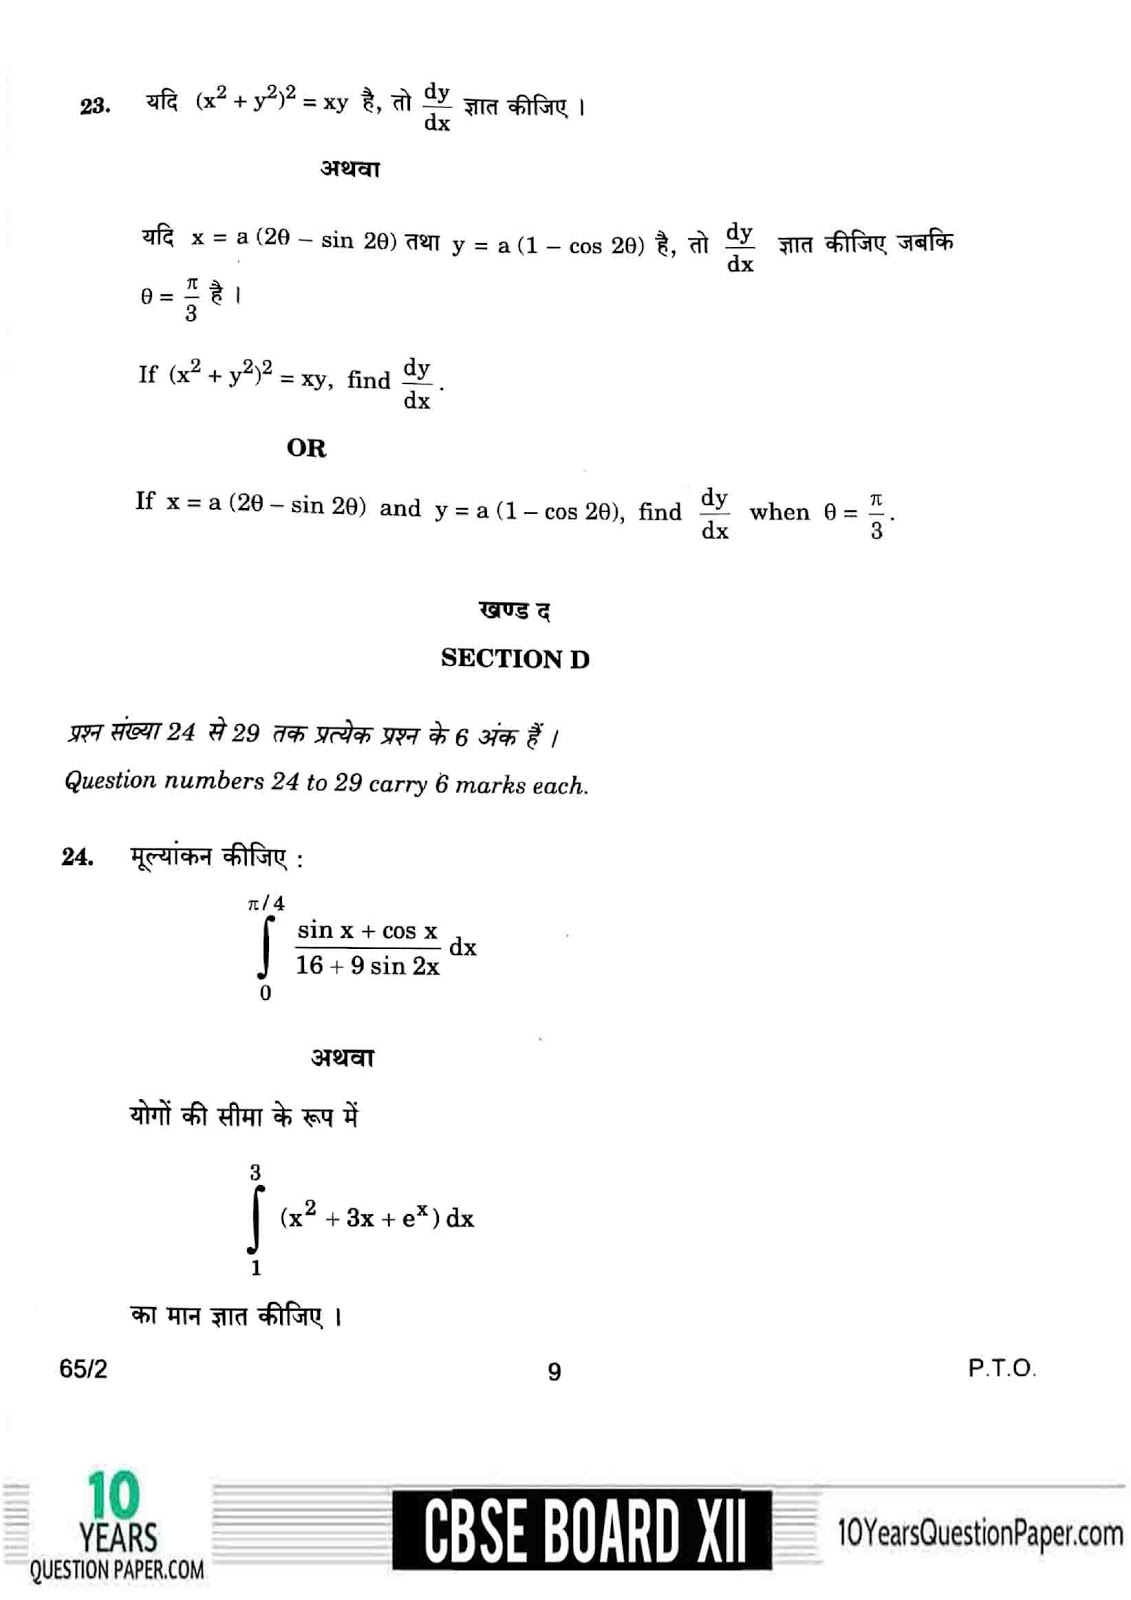 CBSE class 12 Maths 2018 question paper page-08